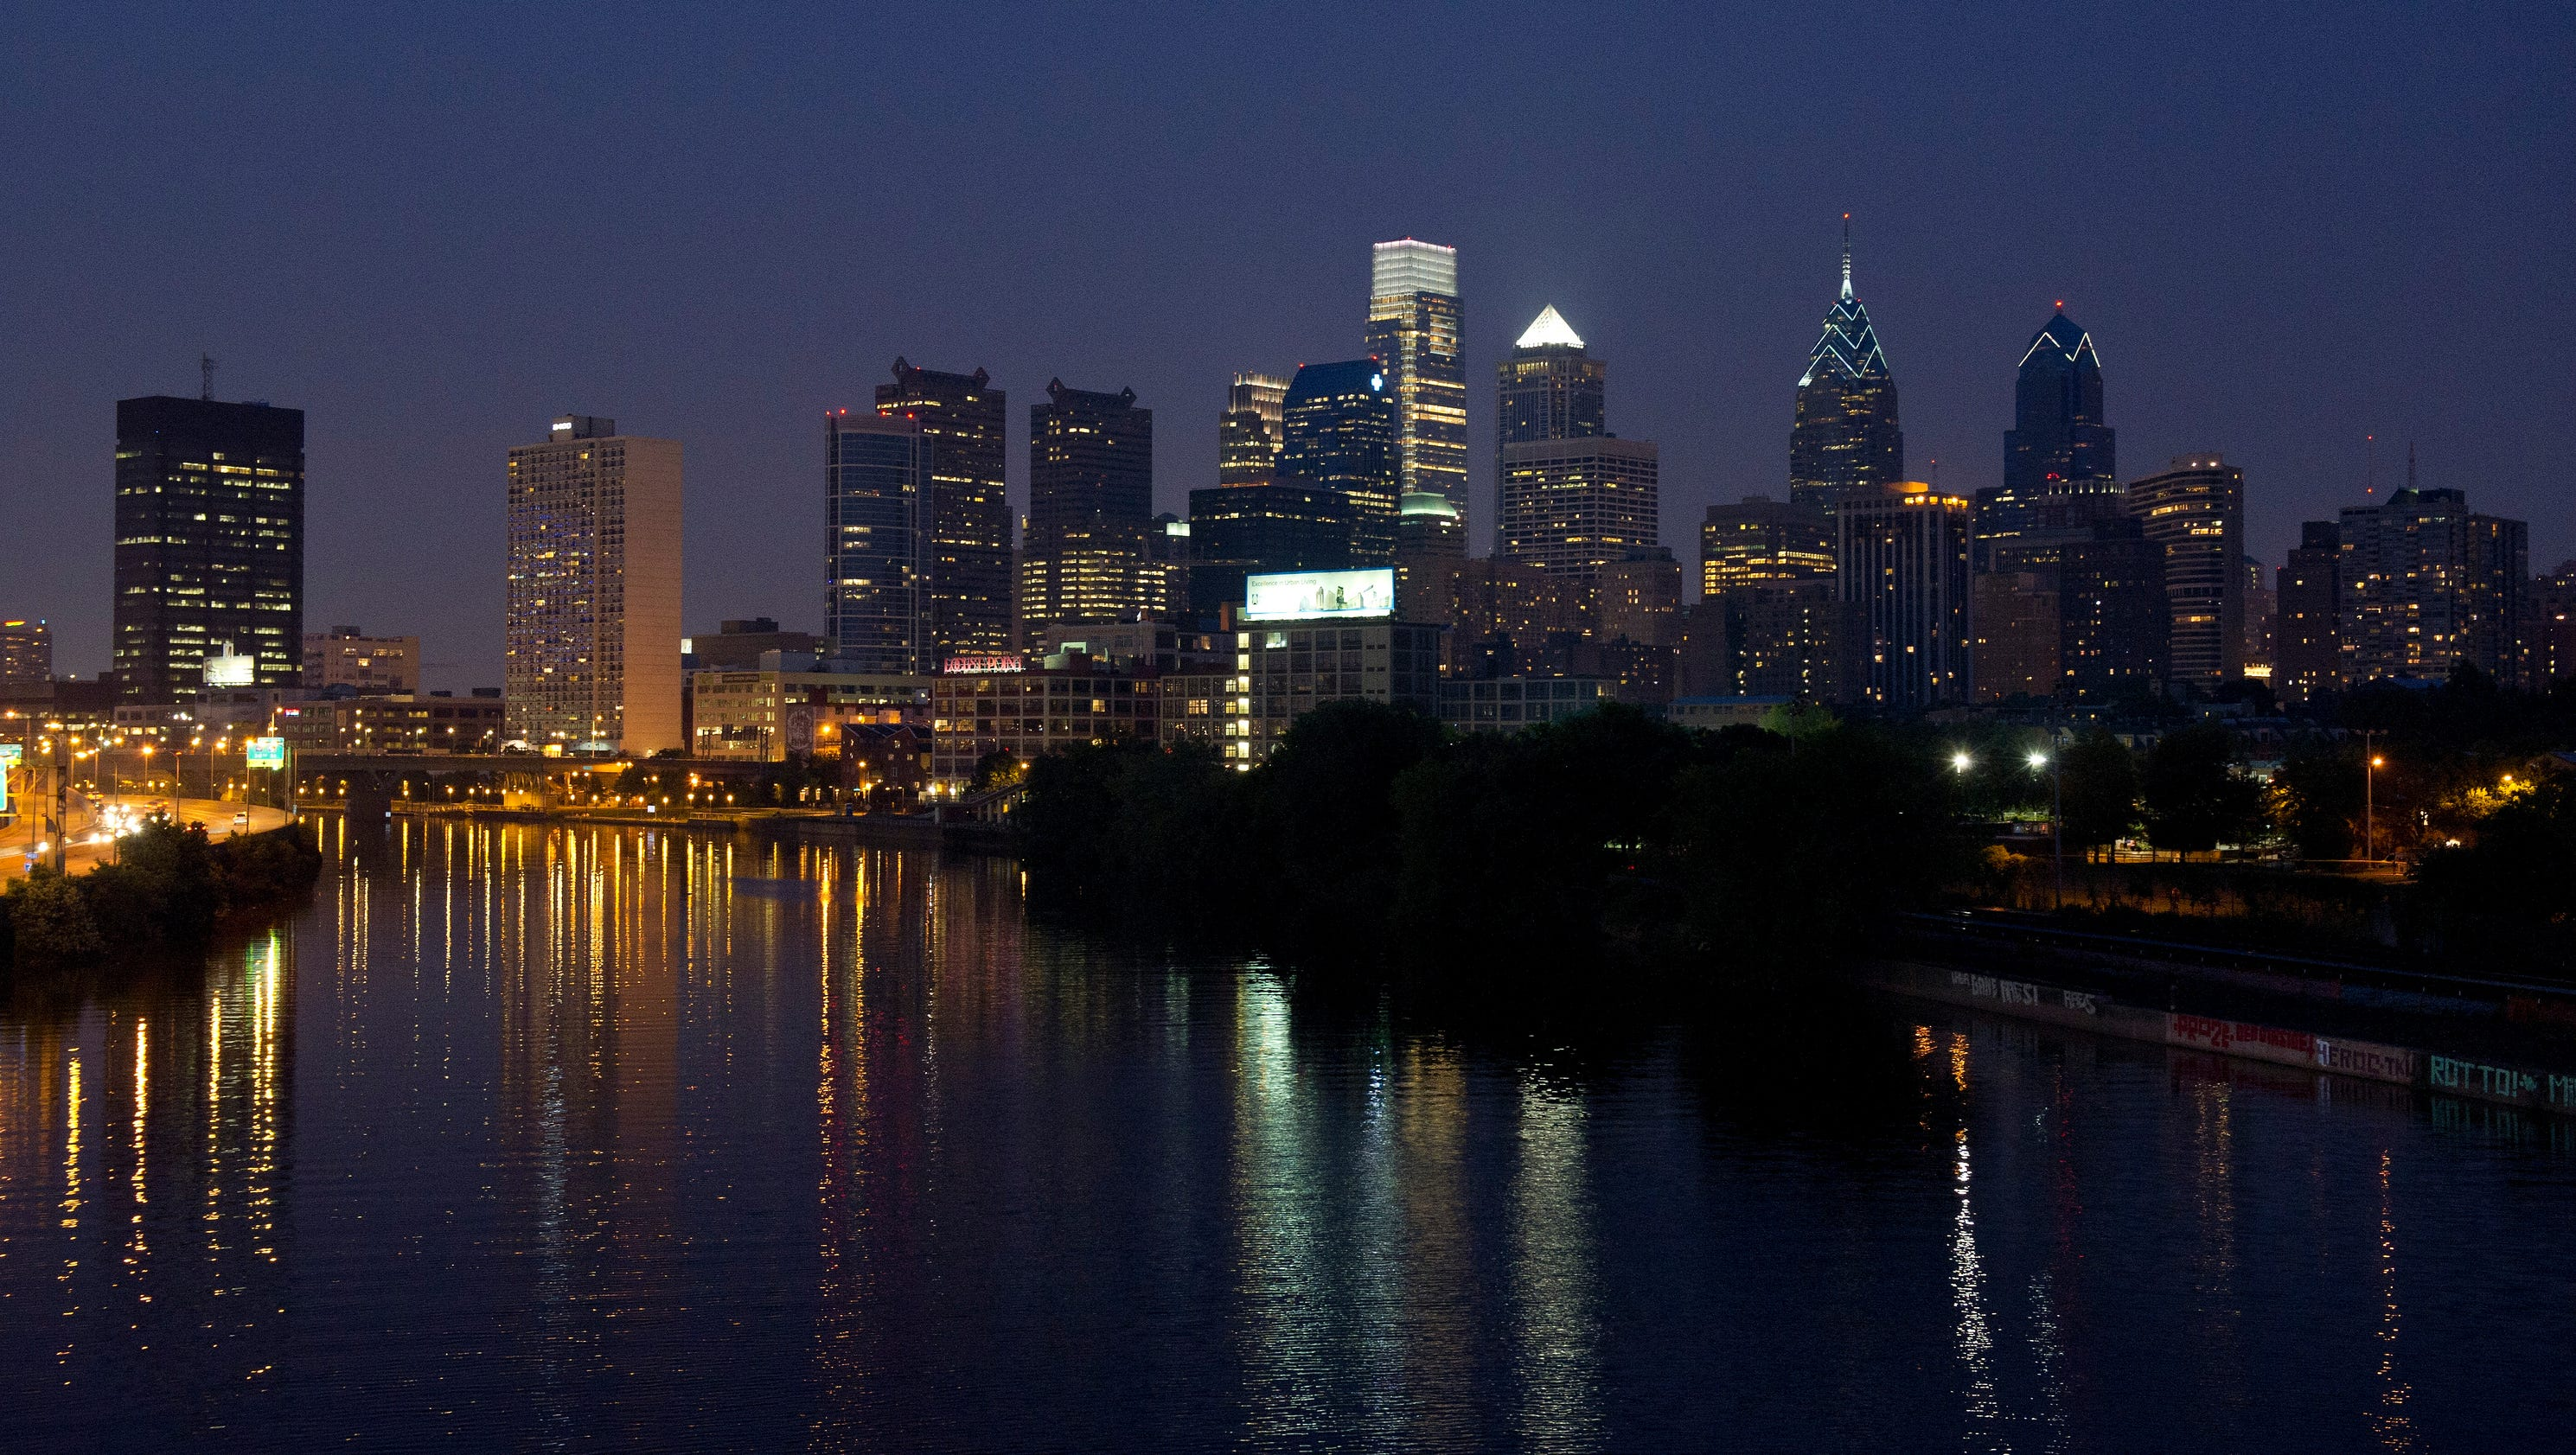 Philly Chicago And Baltimore Best Cities For Vampires